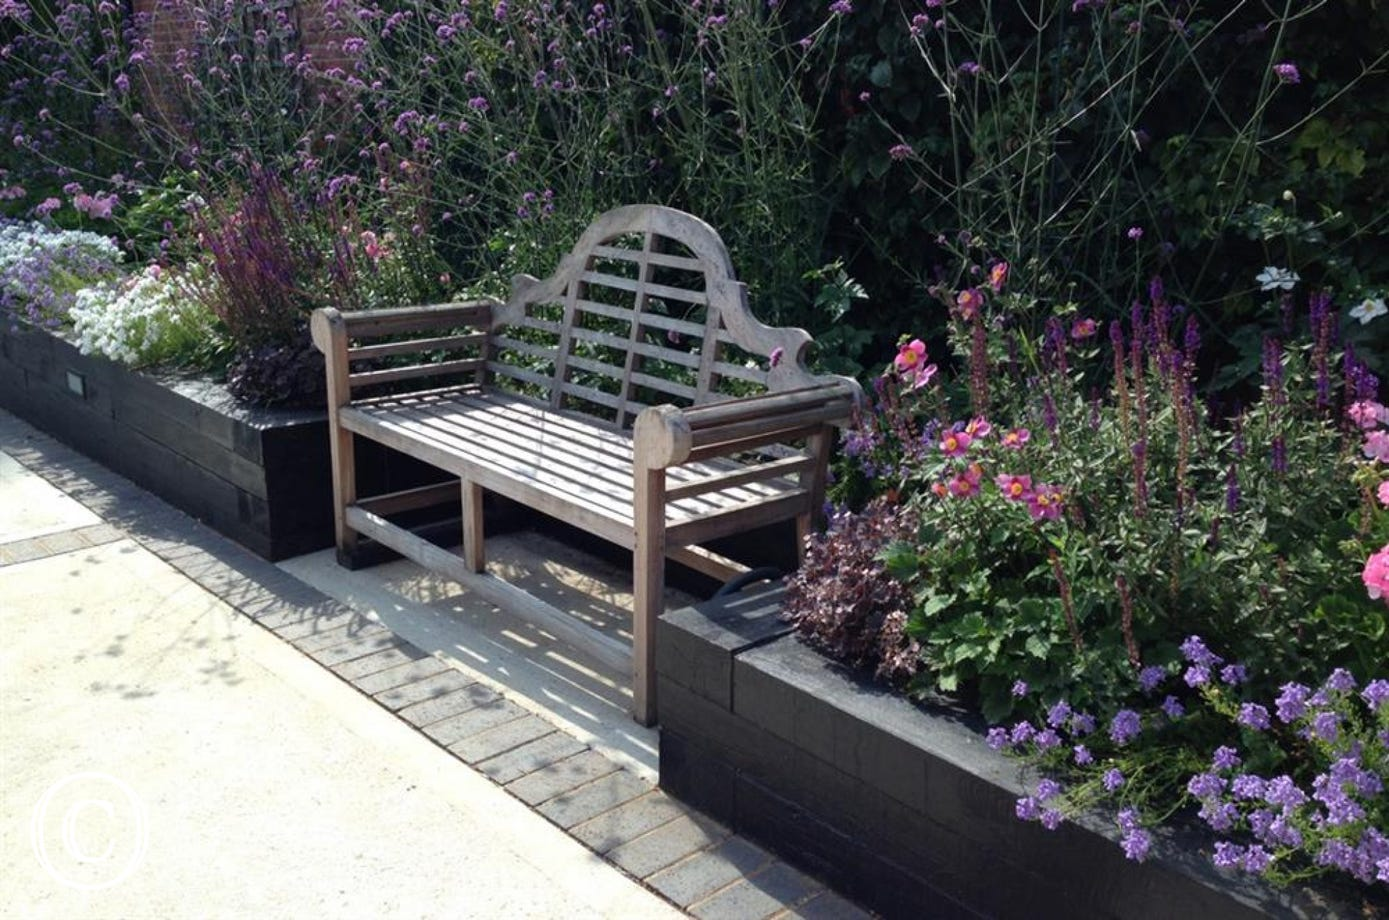 This rustic bench will provide a nice place to sit especially in summer when all the bulbs are out.